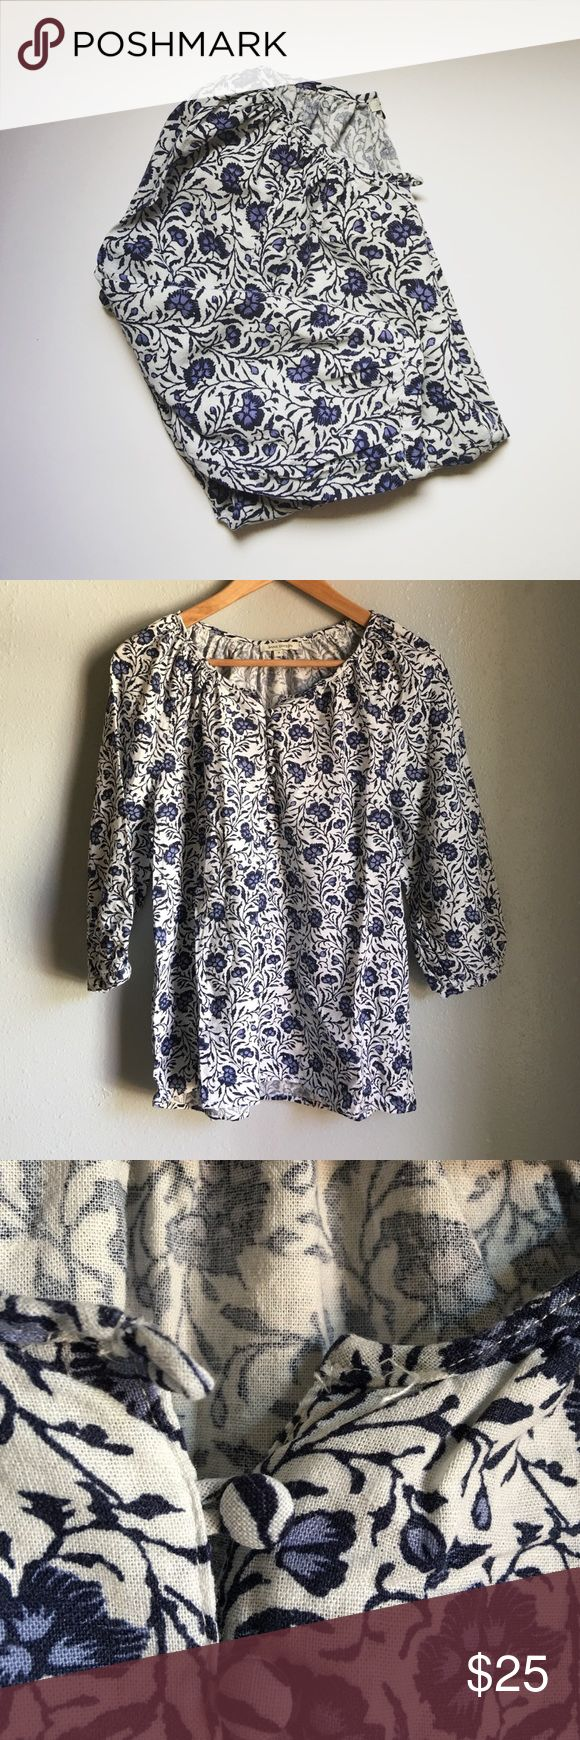 """Floral Blouse -Excellent condition, no flaws  -loose, flowly fit -missing top button -linen type material   Trades welcomed